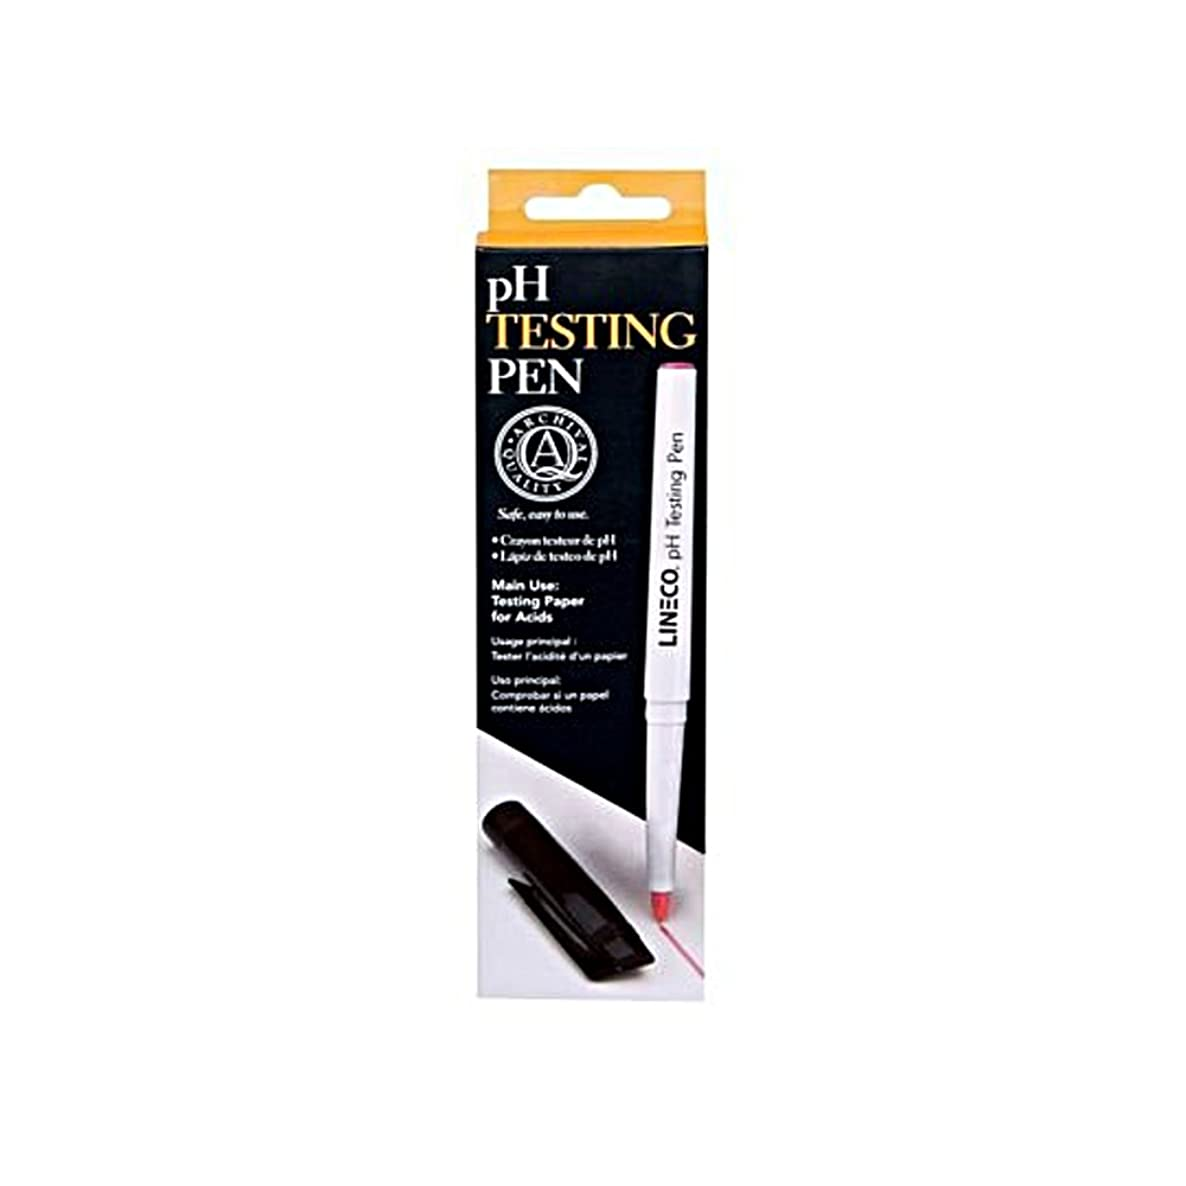 Lineco pH Testing Pen for Paper or Paperboard Products.